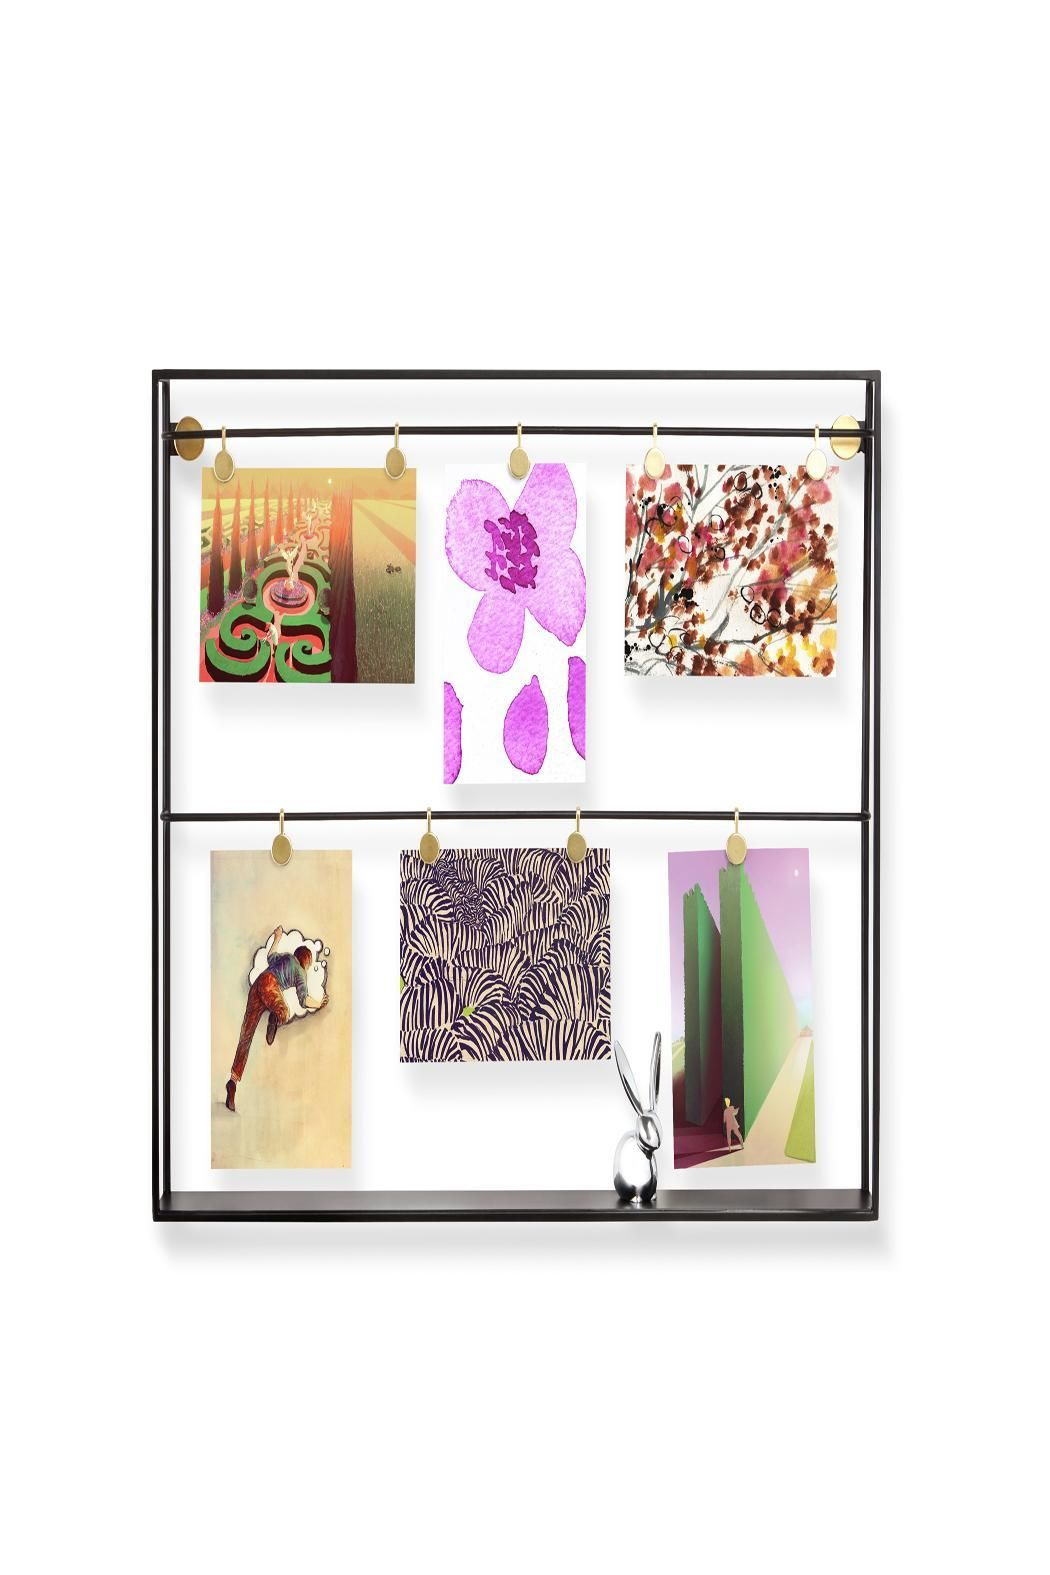 """Metal Photo Frame to hang your photos with clips.    Dimensions: 20 x 16 x 2½"""" (50.8 x 40.6 x 6.3 cm)   Trax Photo Display by Umbra. Home & Gifts - Home Decor - Frames Massachusetts"""